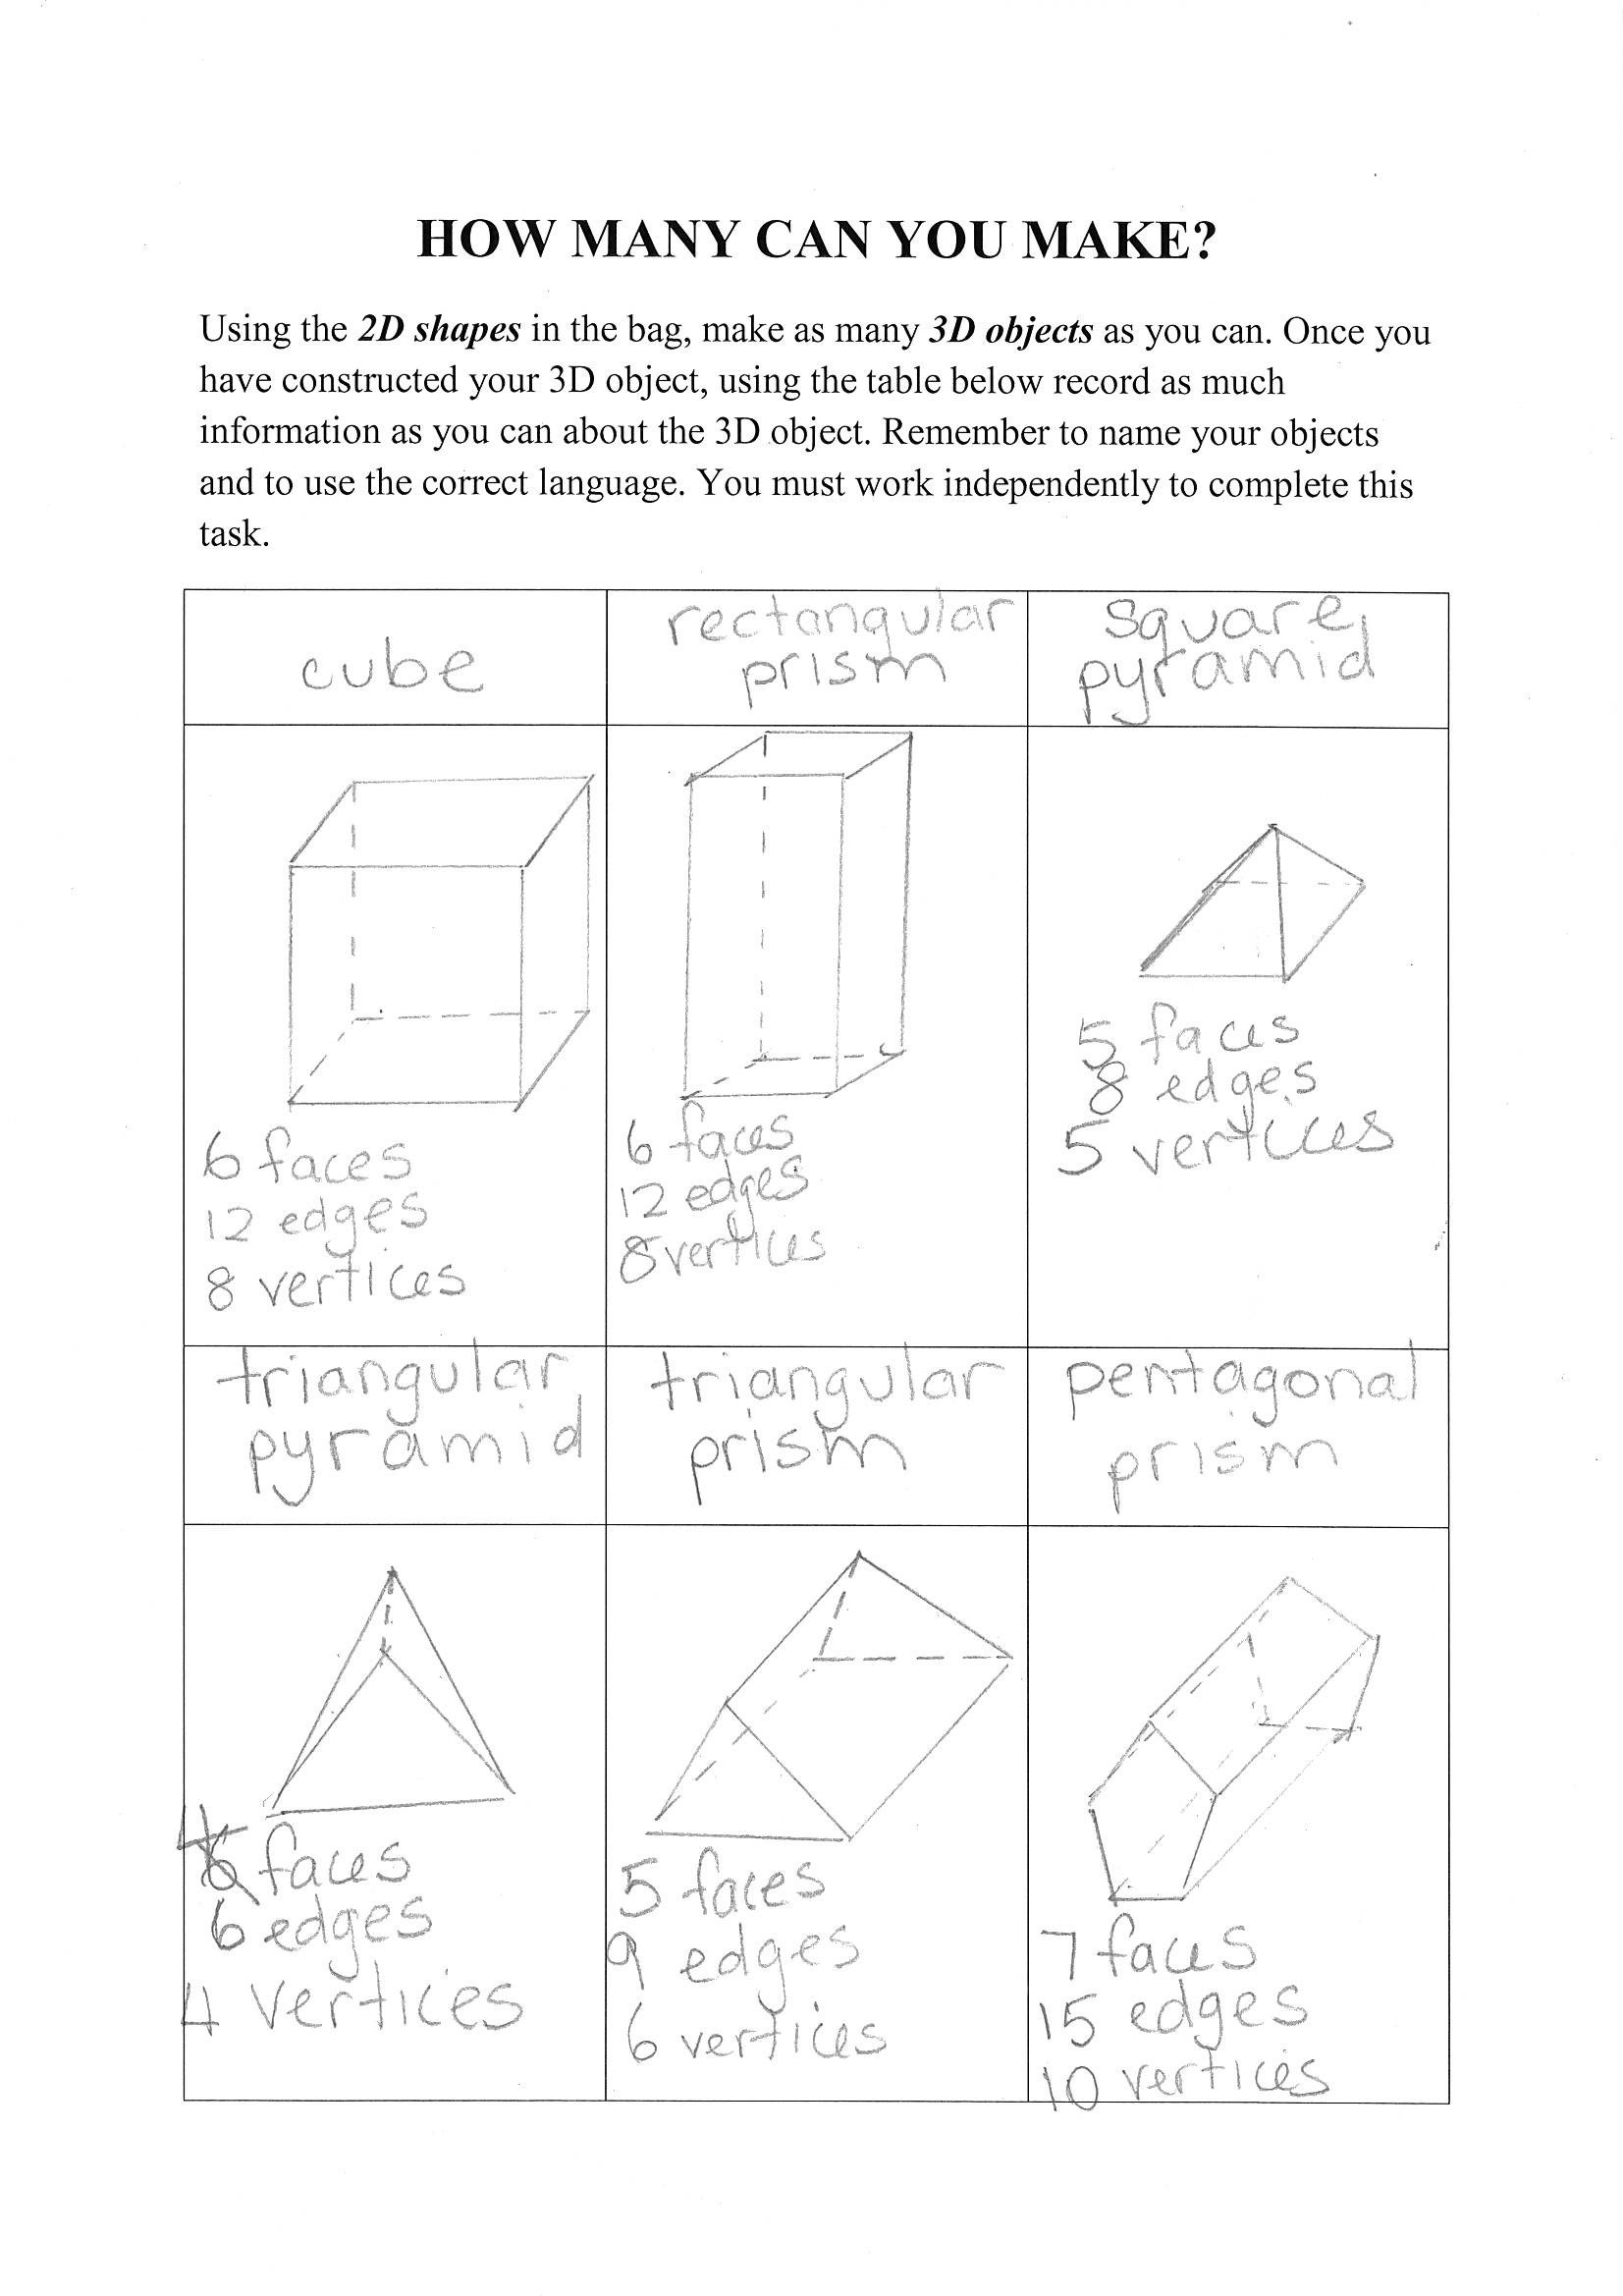 Annotation Worksheet Middle School Annotated Work Sample Portfolios are Provided to Support